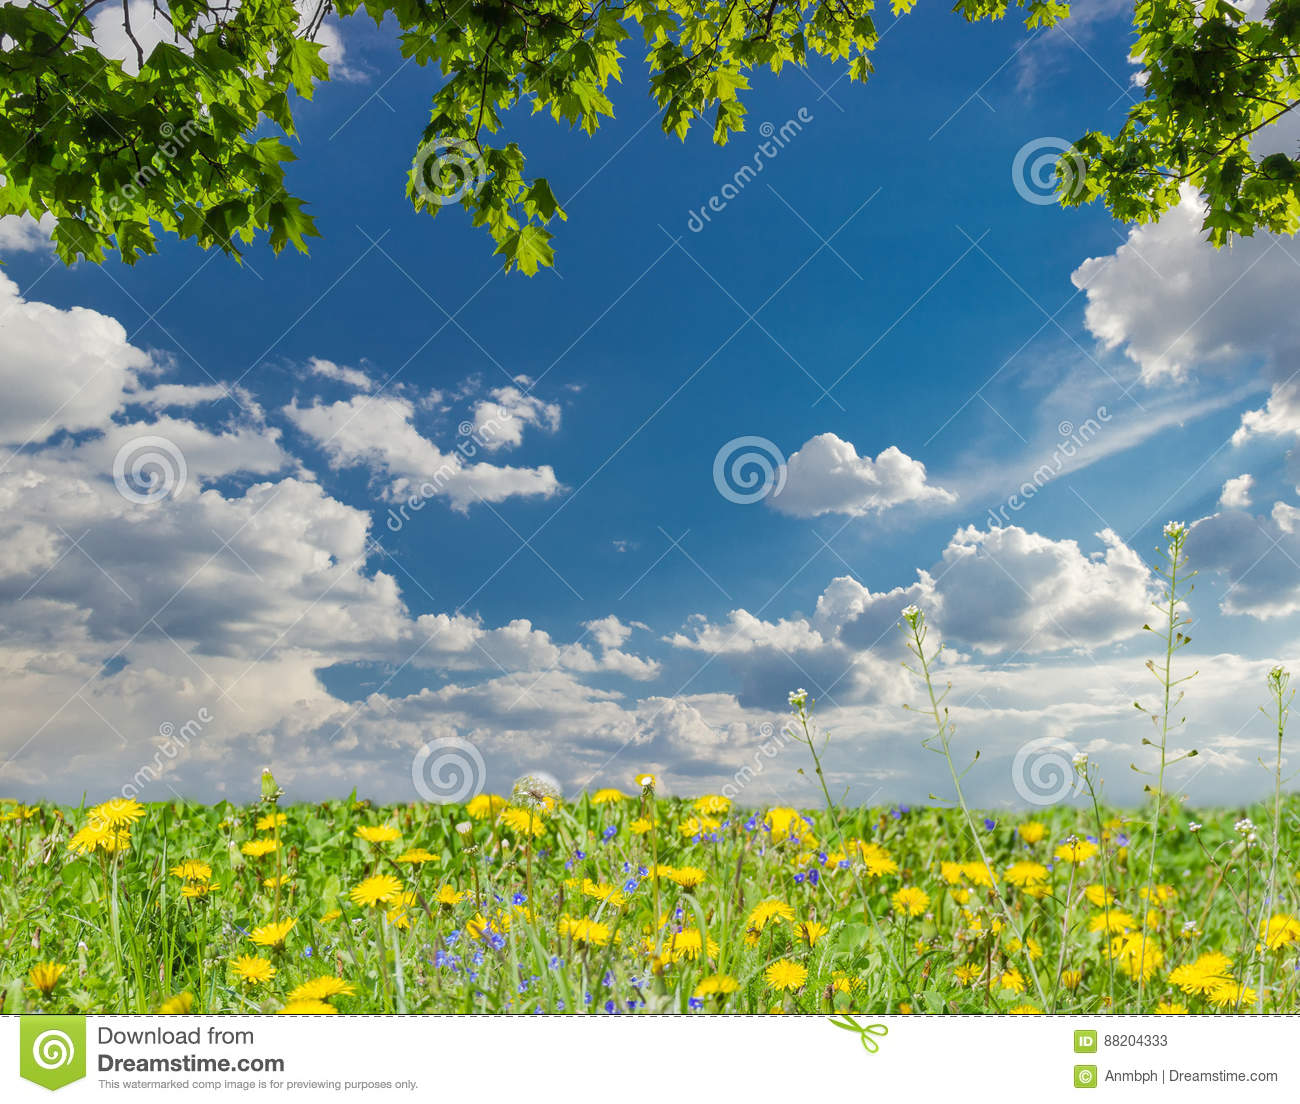 Maple Branches, Sky With Clouds And Lawn With Dandelions